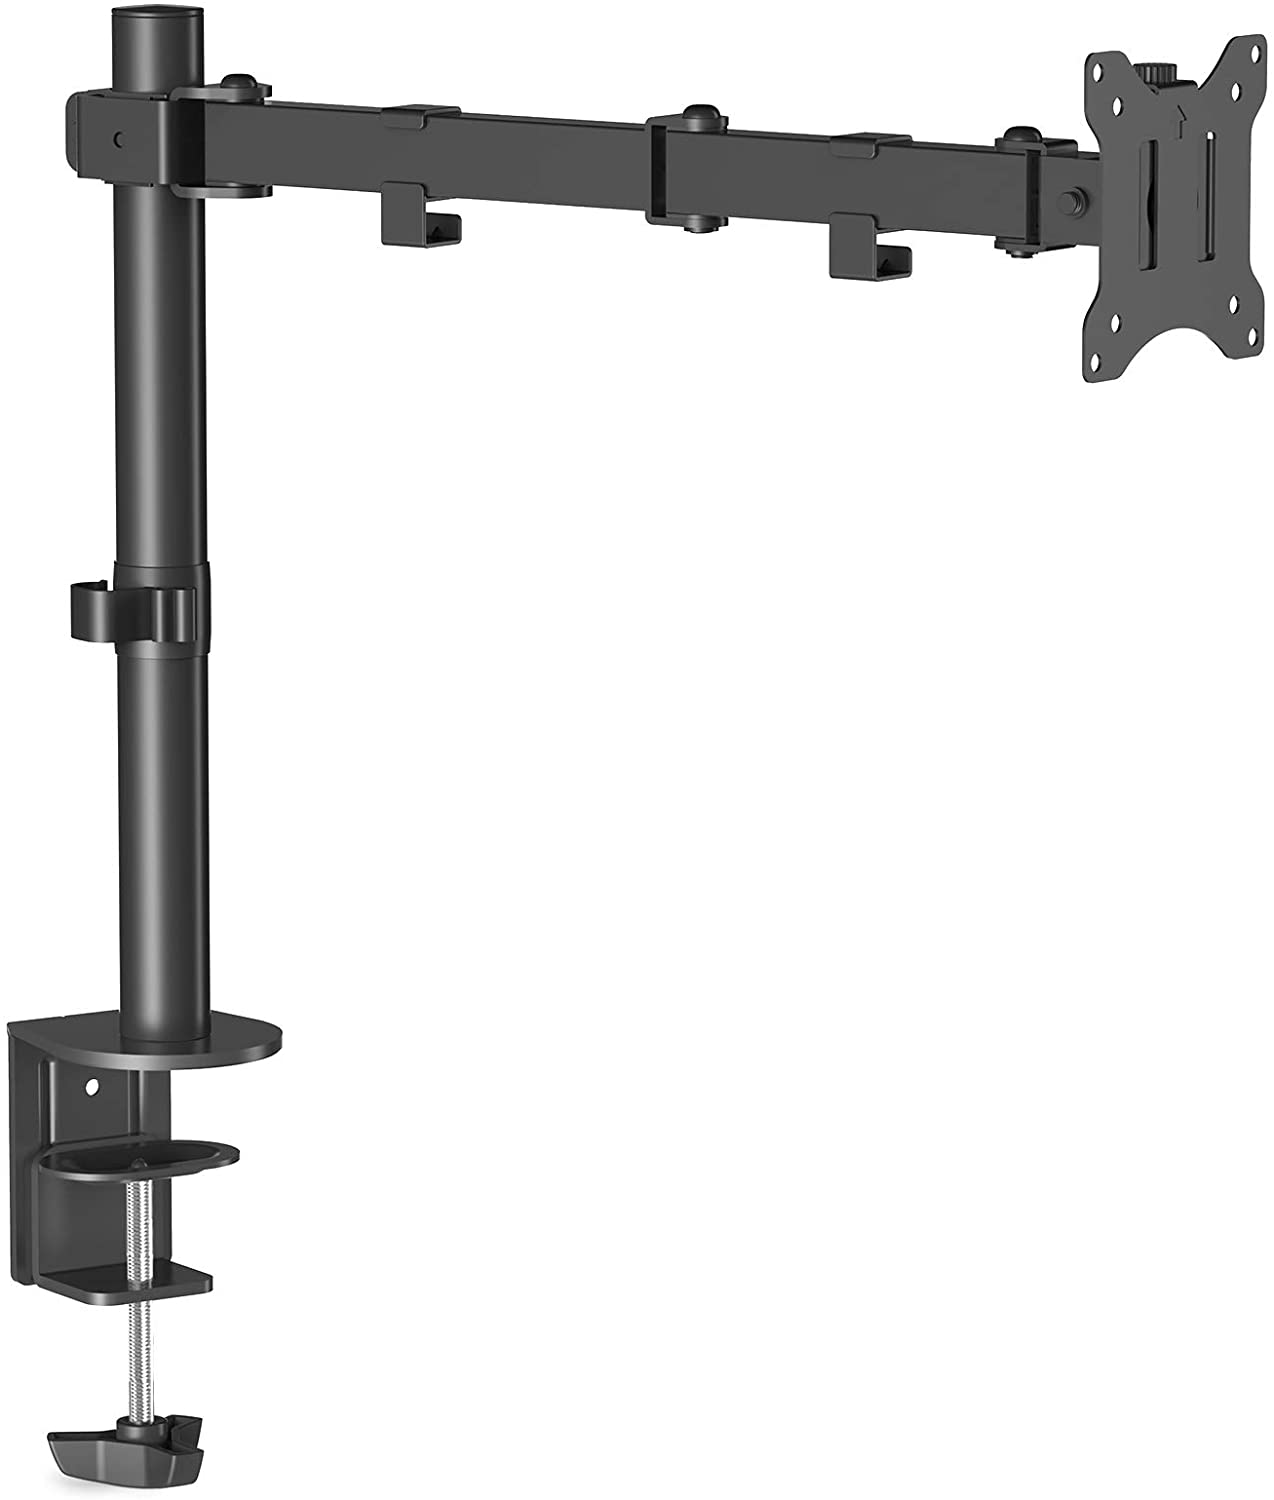 """(EU EXCLUSIVE) PUTORSEN Single Arm Monitor Desk Mount, Ergonomic Height Adjustable Monitor Bracket Stand for 17""""- 32"""" LCD LED Screens, VESA Dimensions 75x75-100x100 mm, Weight Capacity up to 8 kg"""